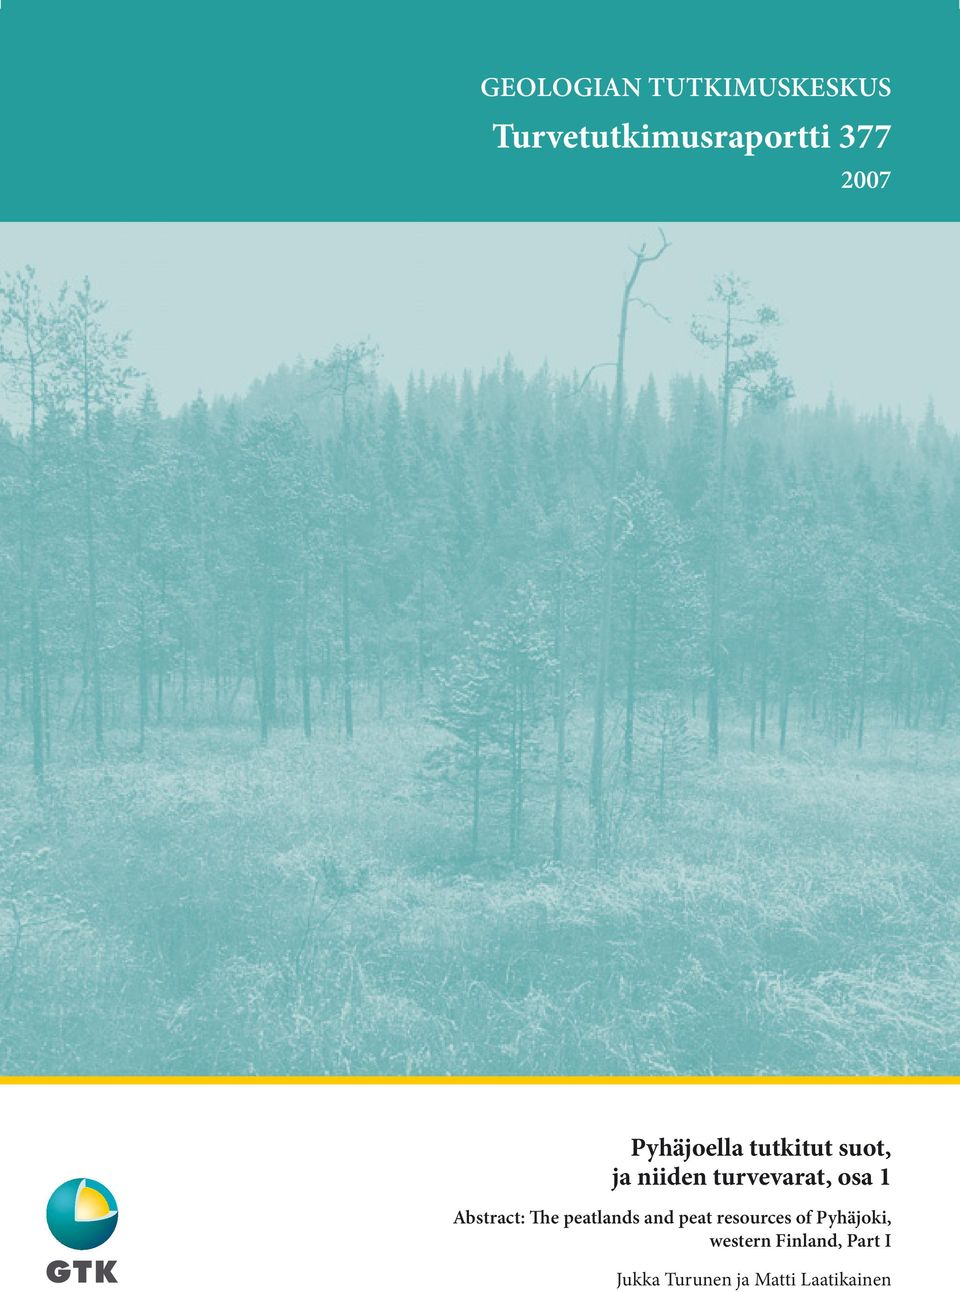 Abstract: The peatlands and peat resources of Pyhäjoki,